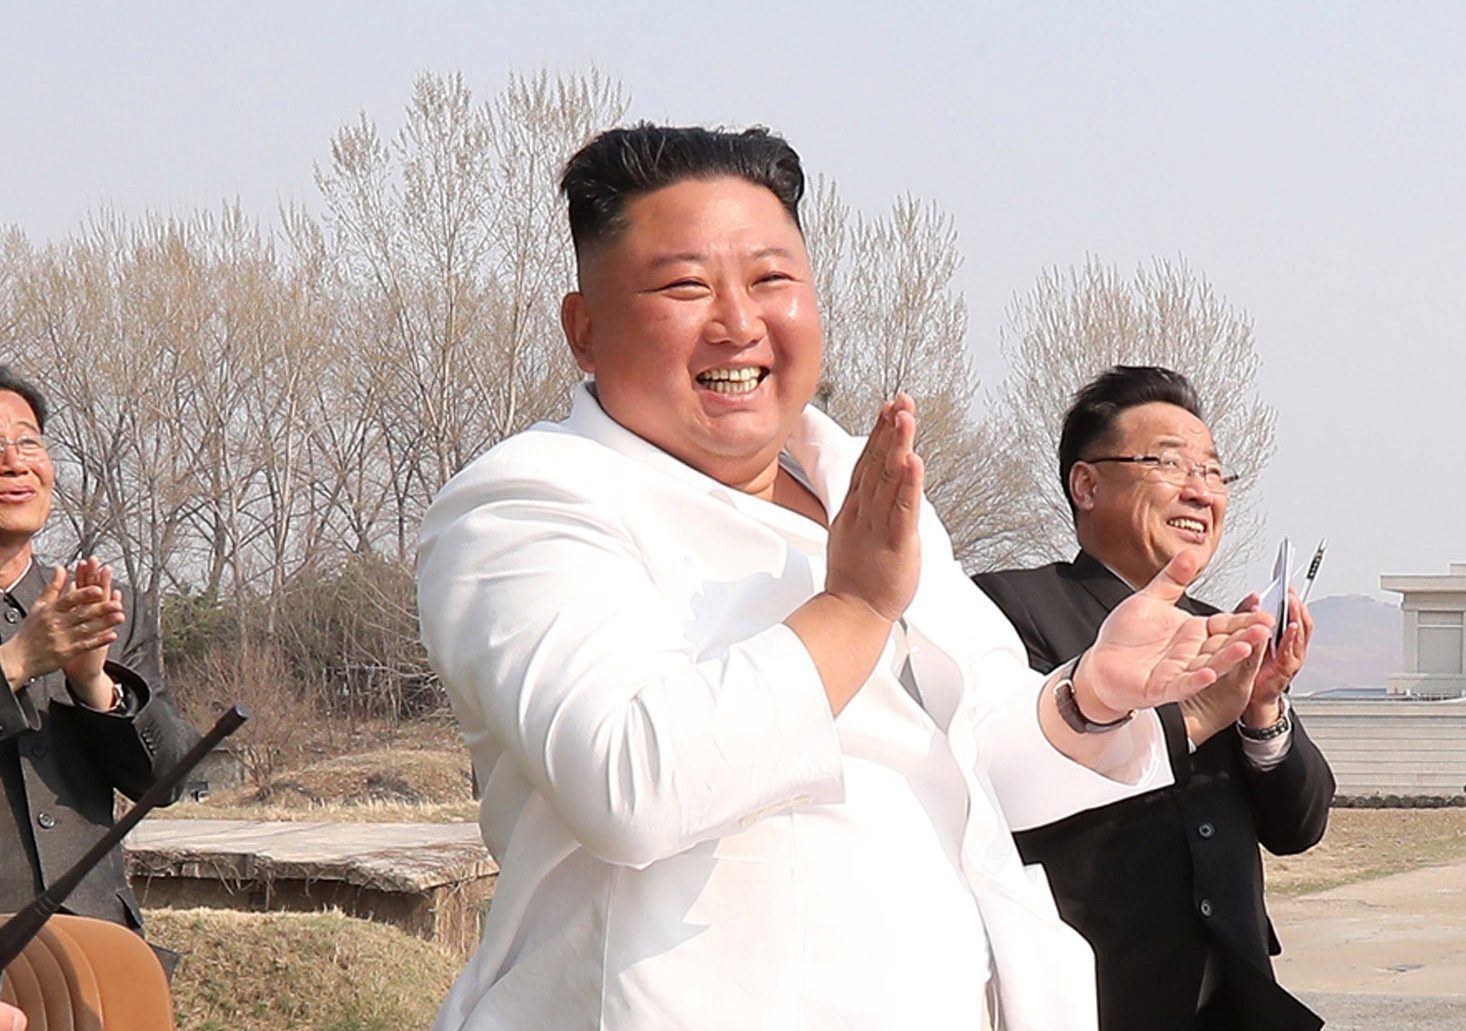 North Korea raises concerns about 'human rights violations' in Australia